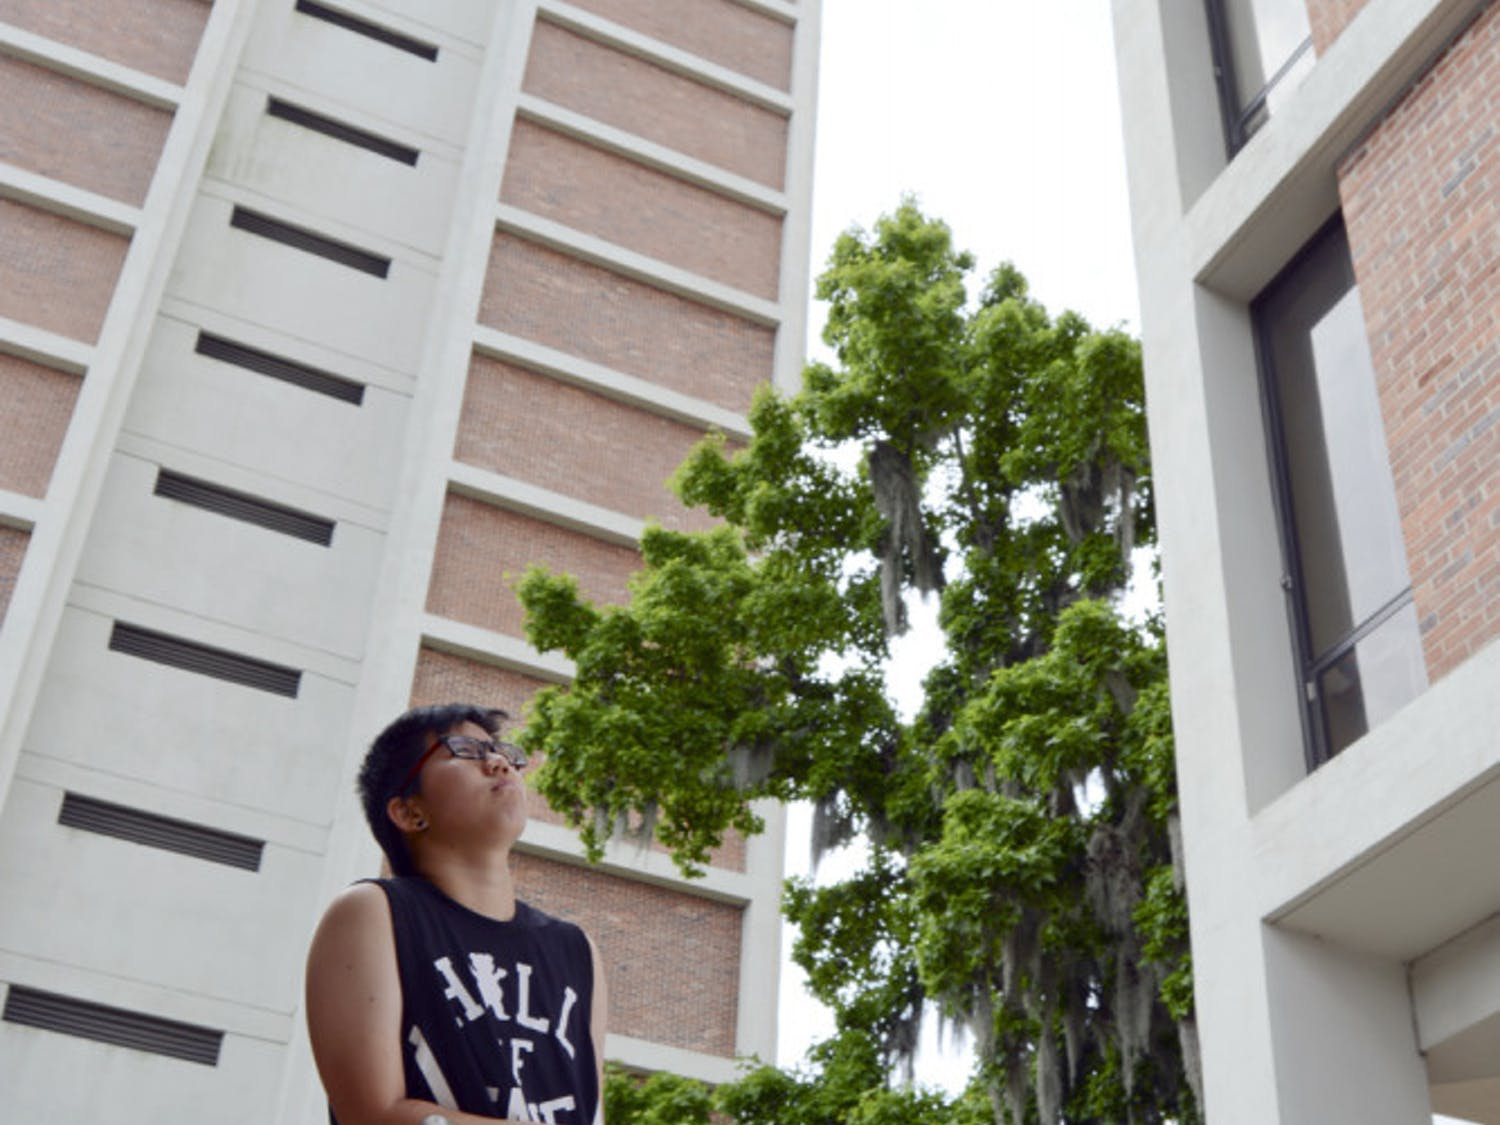 May Niu, a 21-year-old UF industrial and systems engineering junior, poses for a photo in between the Beaty Towers on Sunday. A member of the pilot class of the Innovation Academy, Niu was not able to run for president of the Chinese American Student Association last fall because she would not be enrolled as a full-time student until spring.